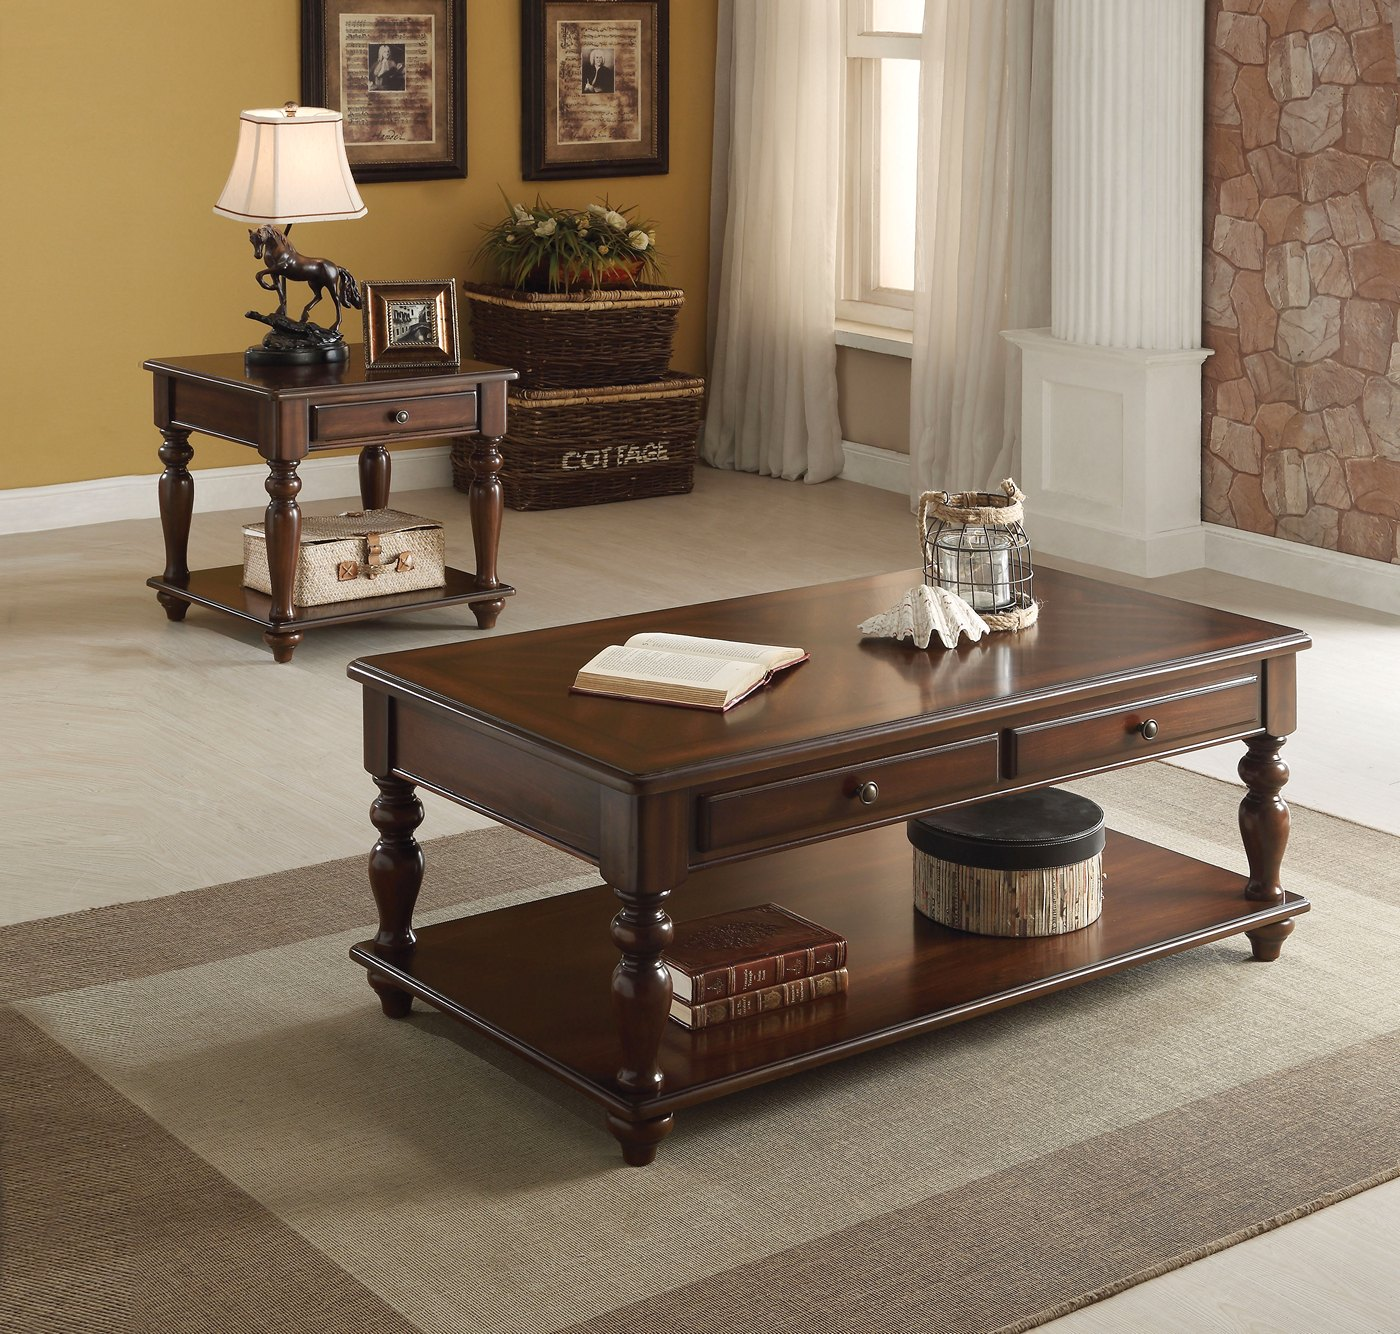 Lift Table Coffee Table: Faolan Classic Storage Coffee Table W/ Lift Top Accent In